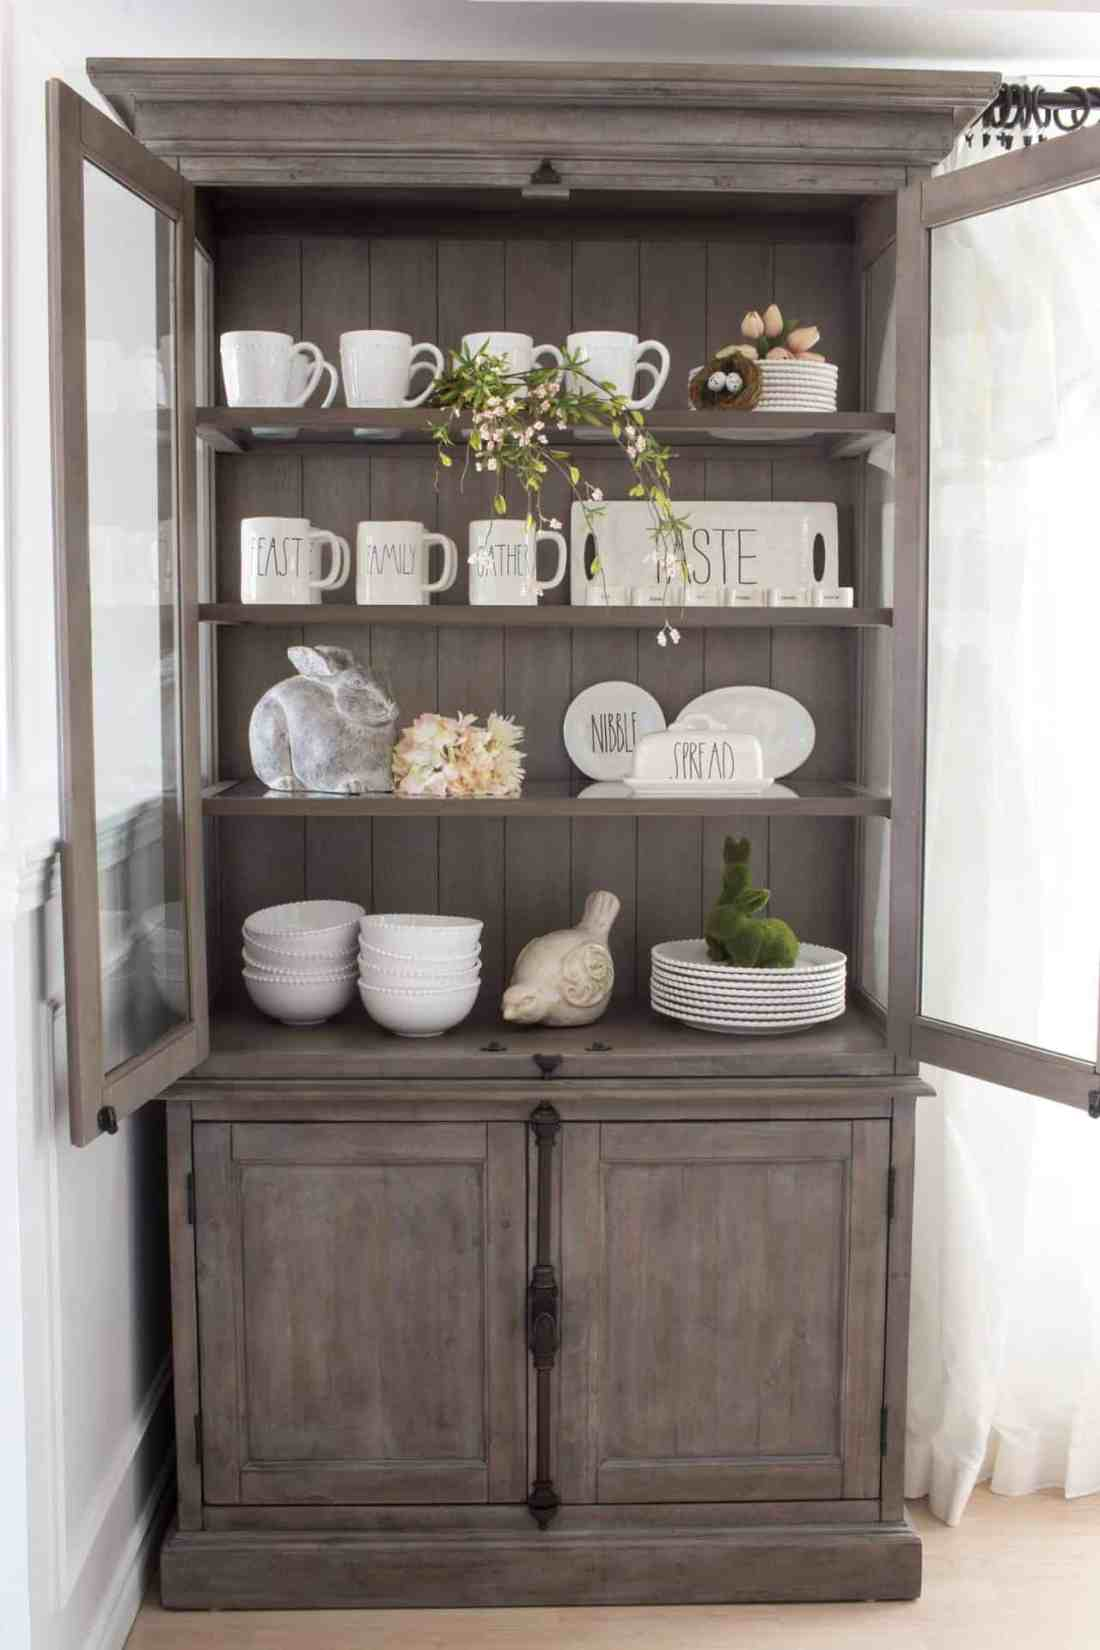 Dean and Shannon's (from HomeMadeLovely.com) suburban farmhouse dining room reveal.